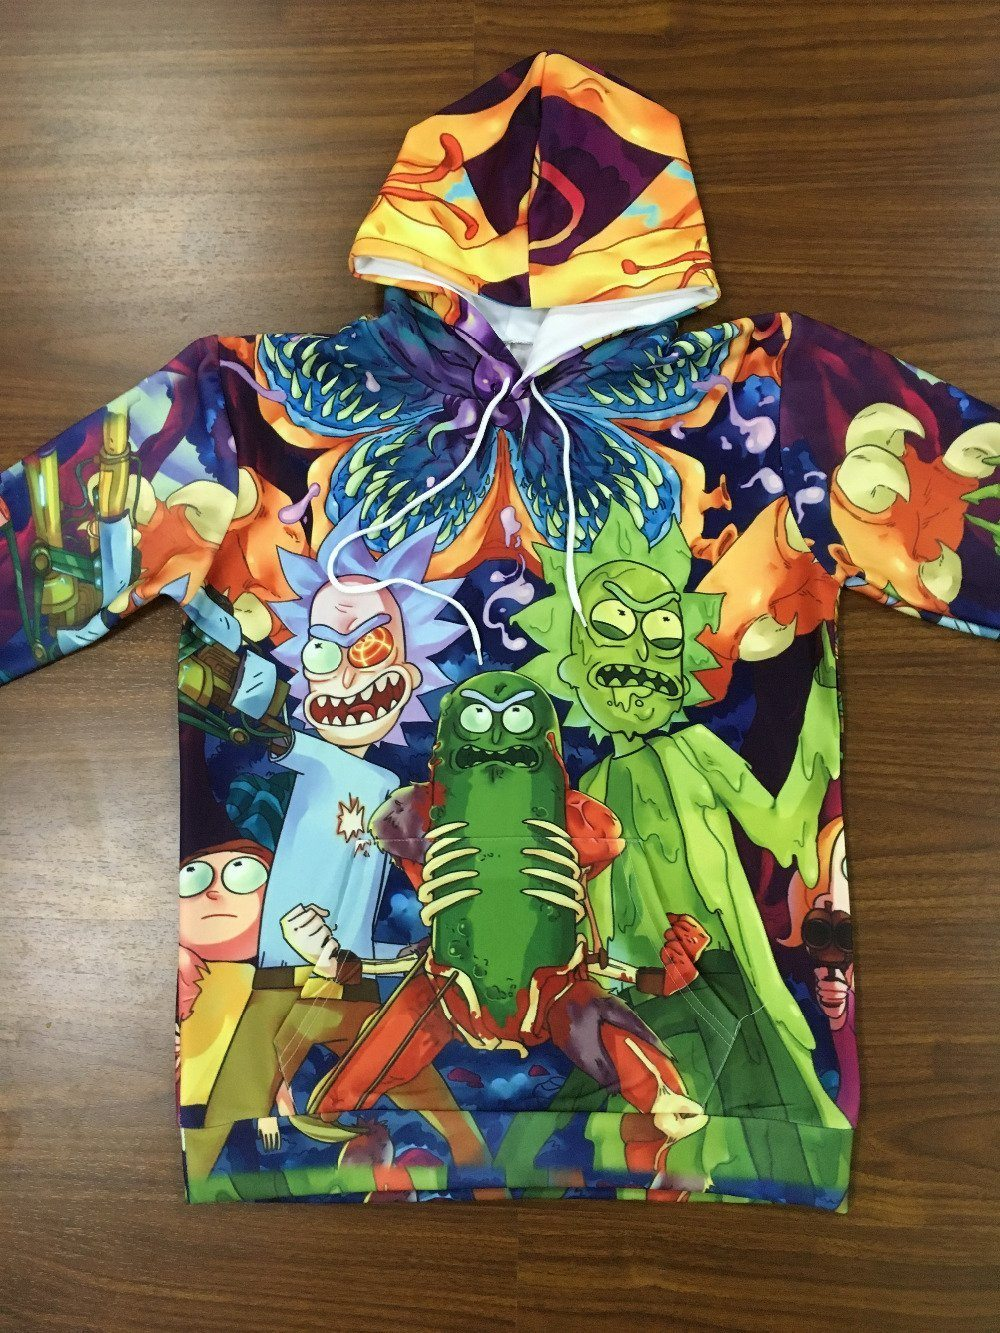 81d94bac4 Rick and morty Hoodie - Psychedelic Tie Dye Pickle Rick and Evil Ricks